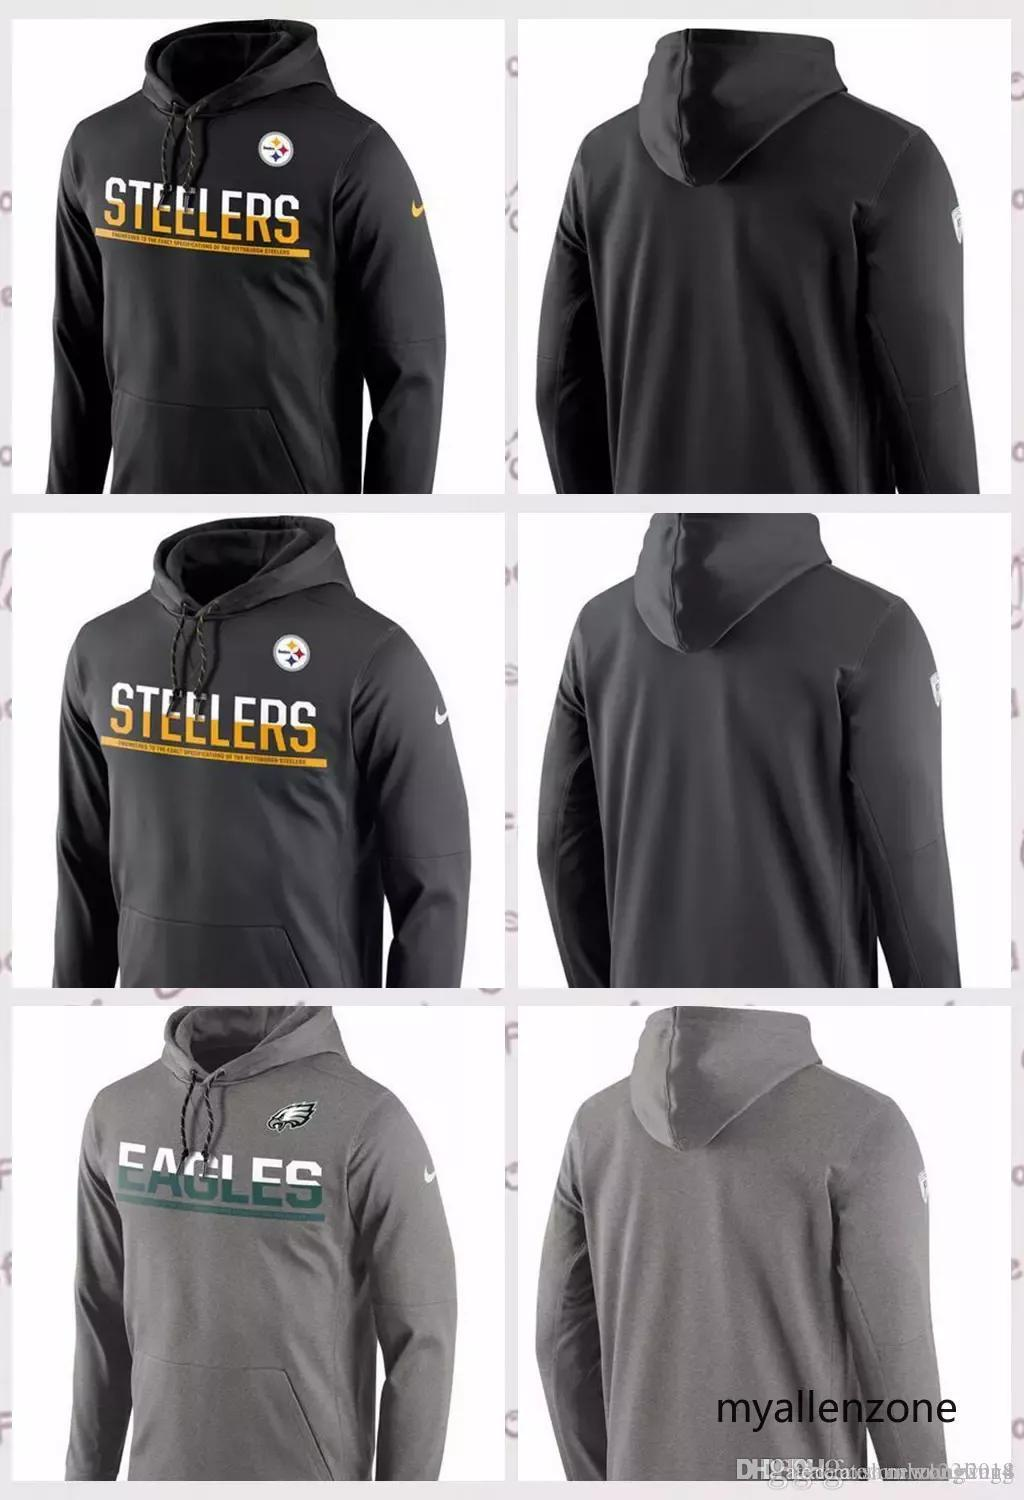 a5e15768b Pittsburgh Steelers Philadelphia Eagles Sideline Circuit Pullover  Performance Hoodie Black Anthracite Gray Online with  68.37 Piece on  Shunhuang2018 s Store ...